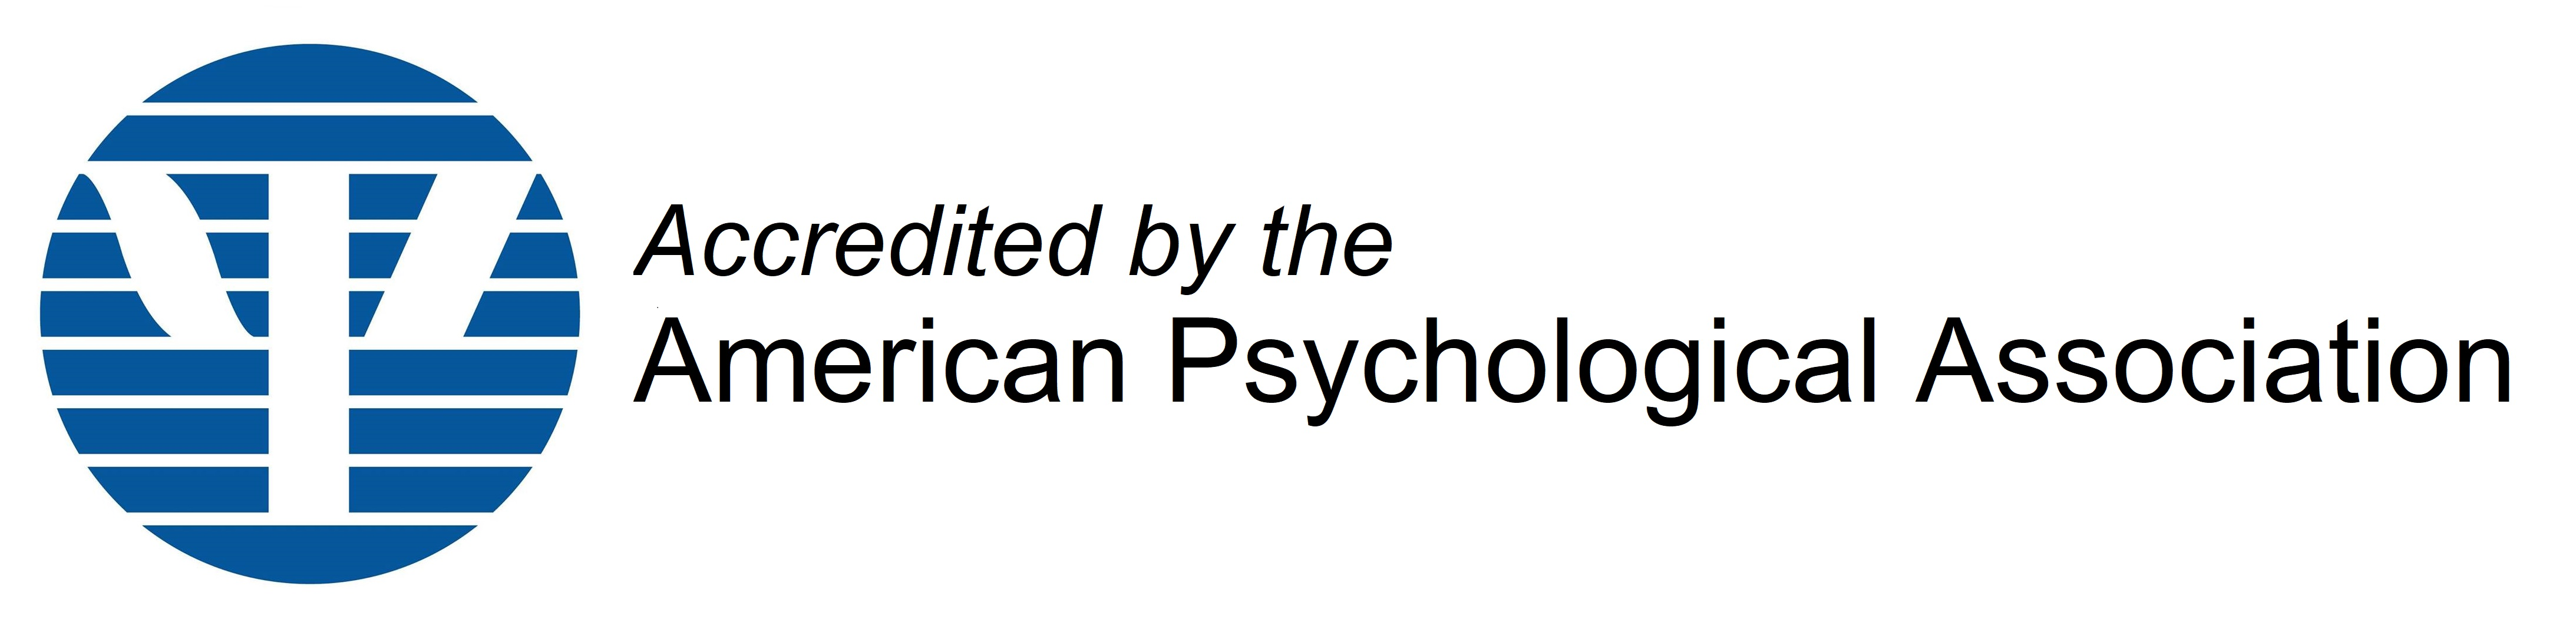 American Psychological Association accreditation - logo